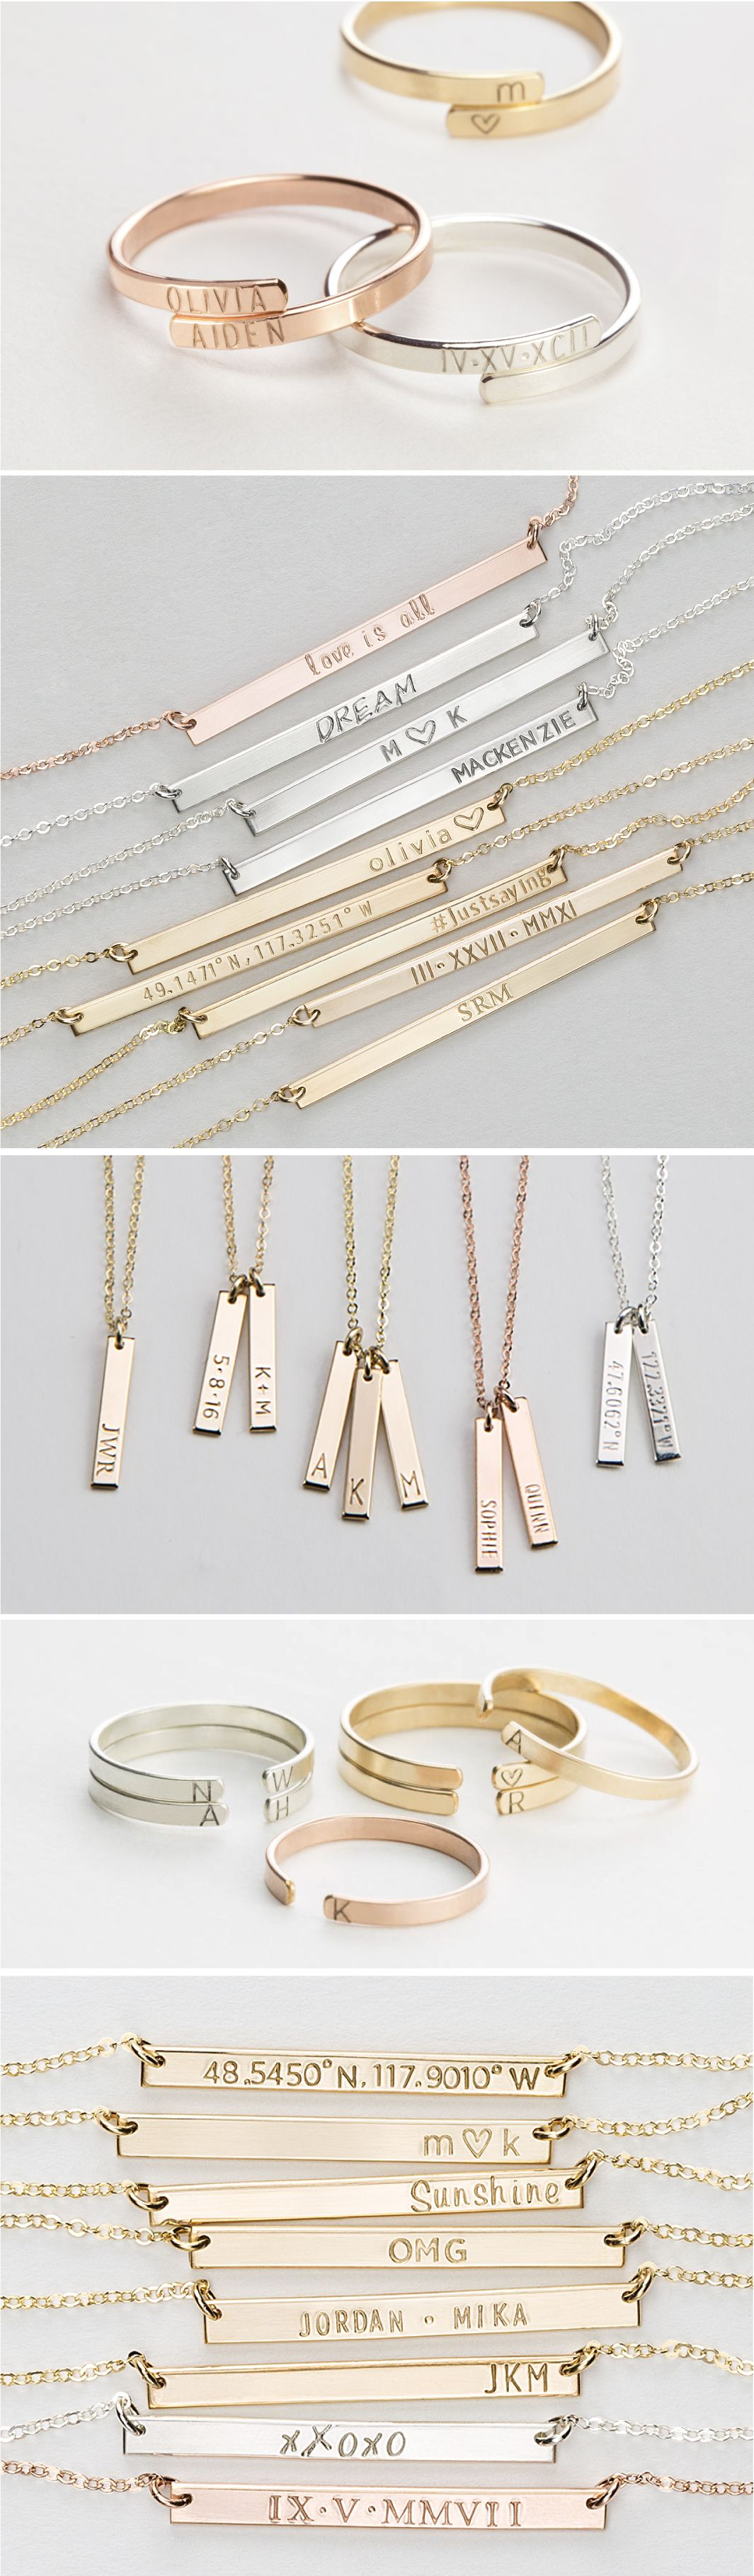 Personalized jewelry gifts special meaningful necklaces rings